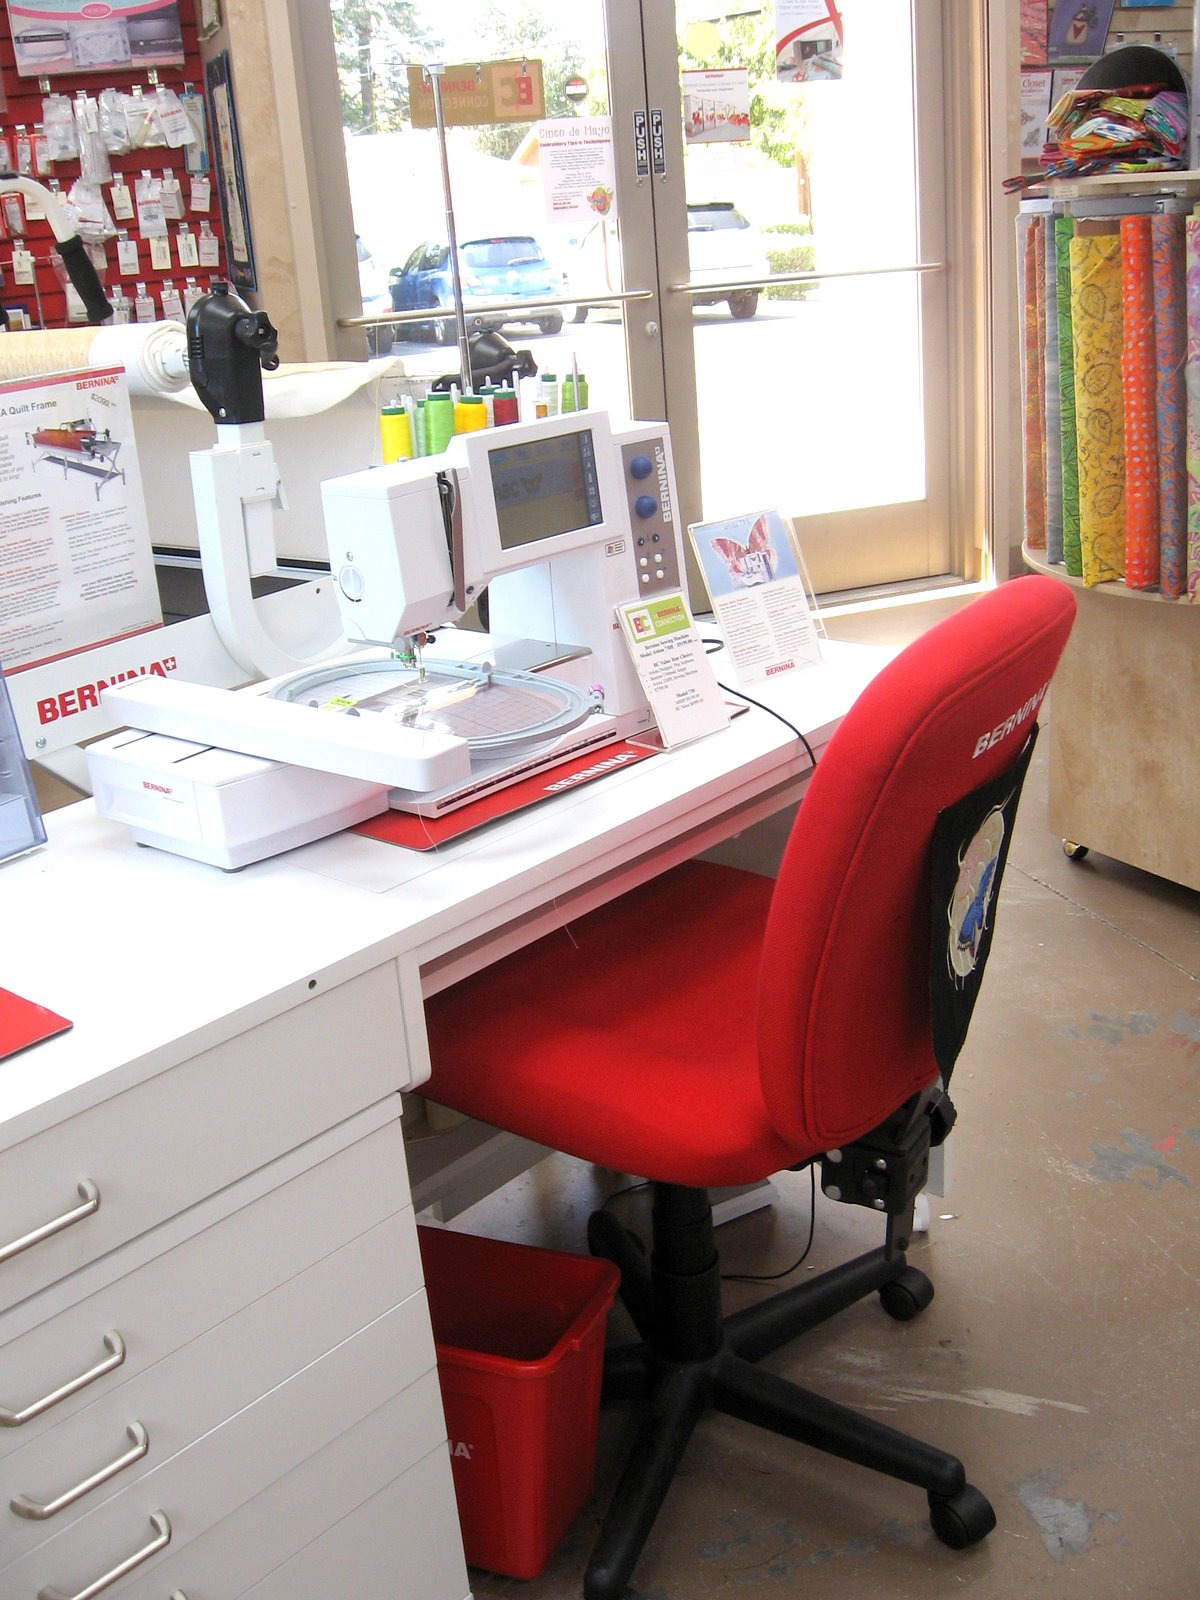 Seriously What Sewing Room Studio Would Not Be Enhanced By The Look And Comfort Of One Our Bernina Red Chairs Instant Energy I Tell You